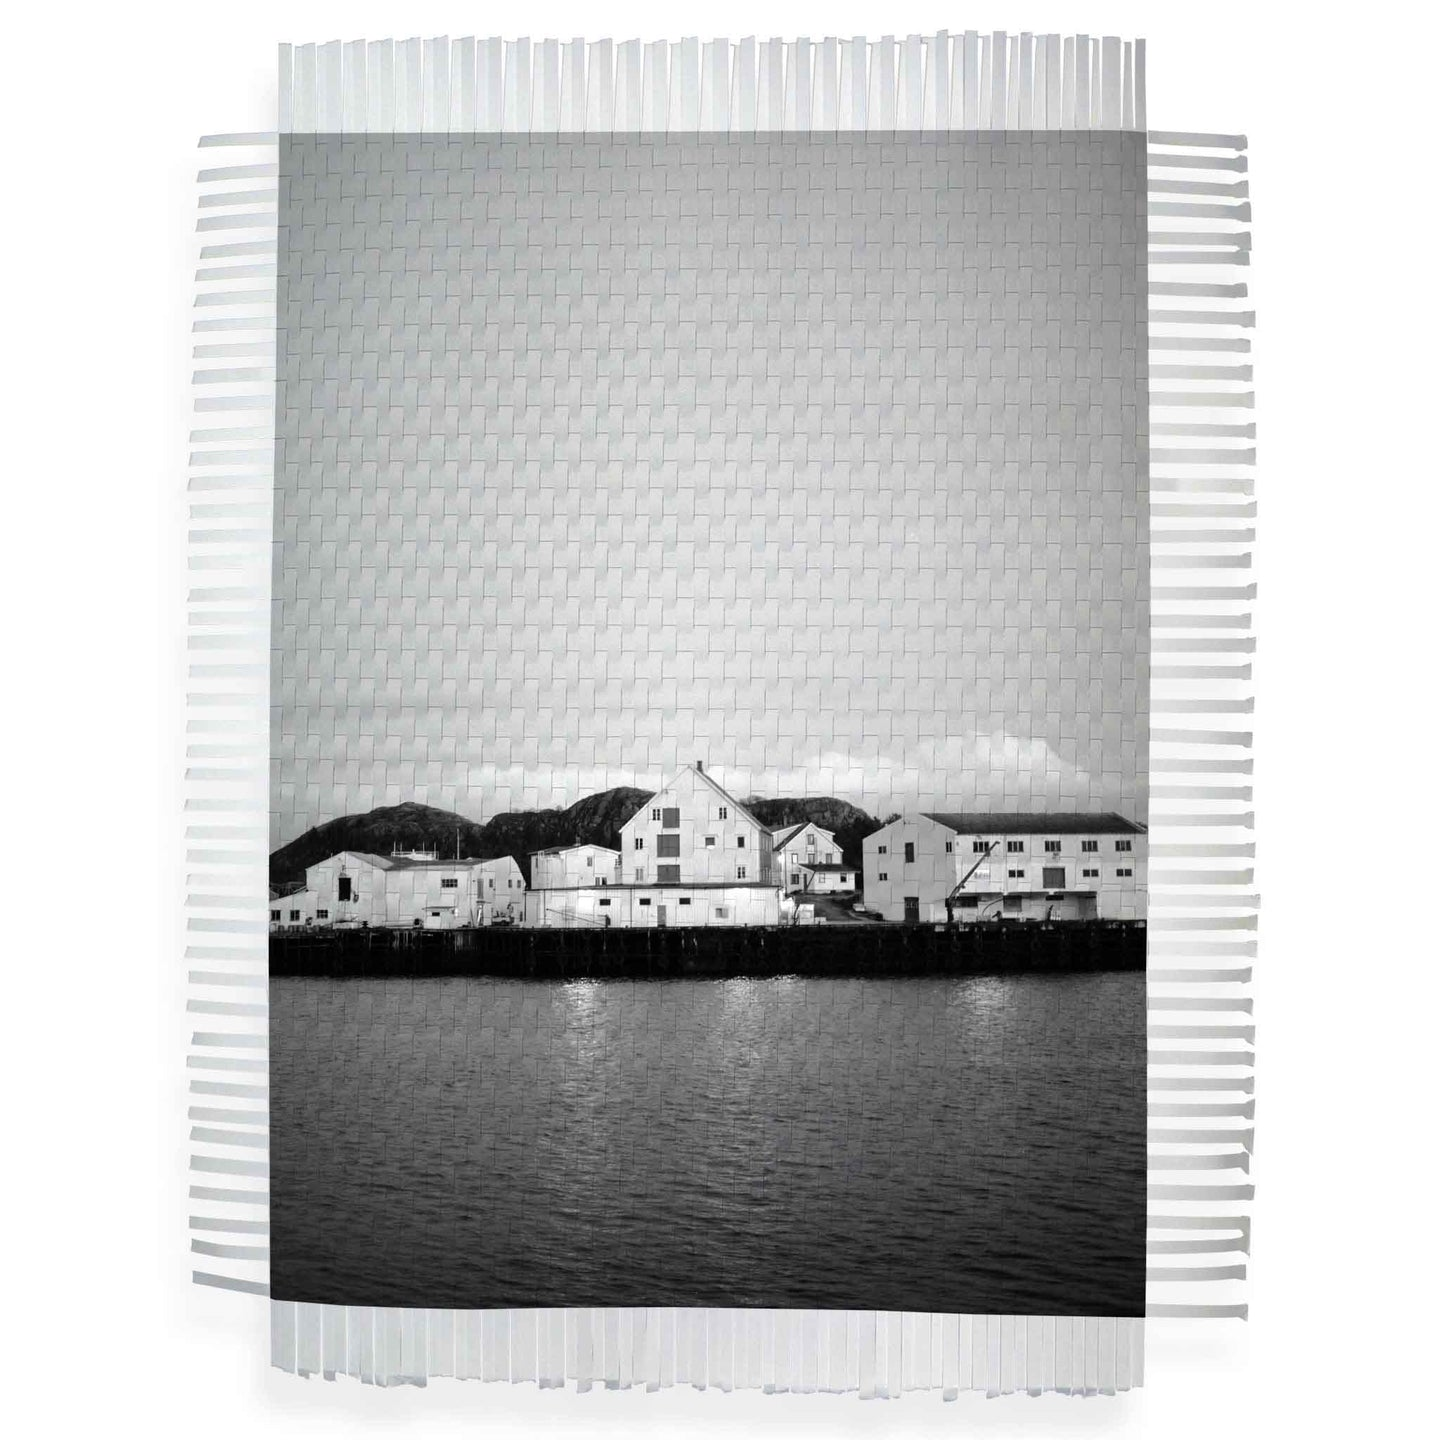 BY THE WATER - WOVEN PHOTOGRAPH